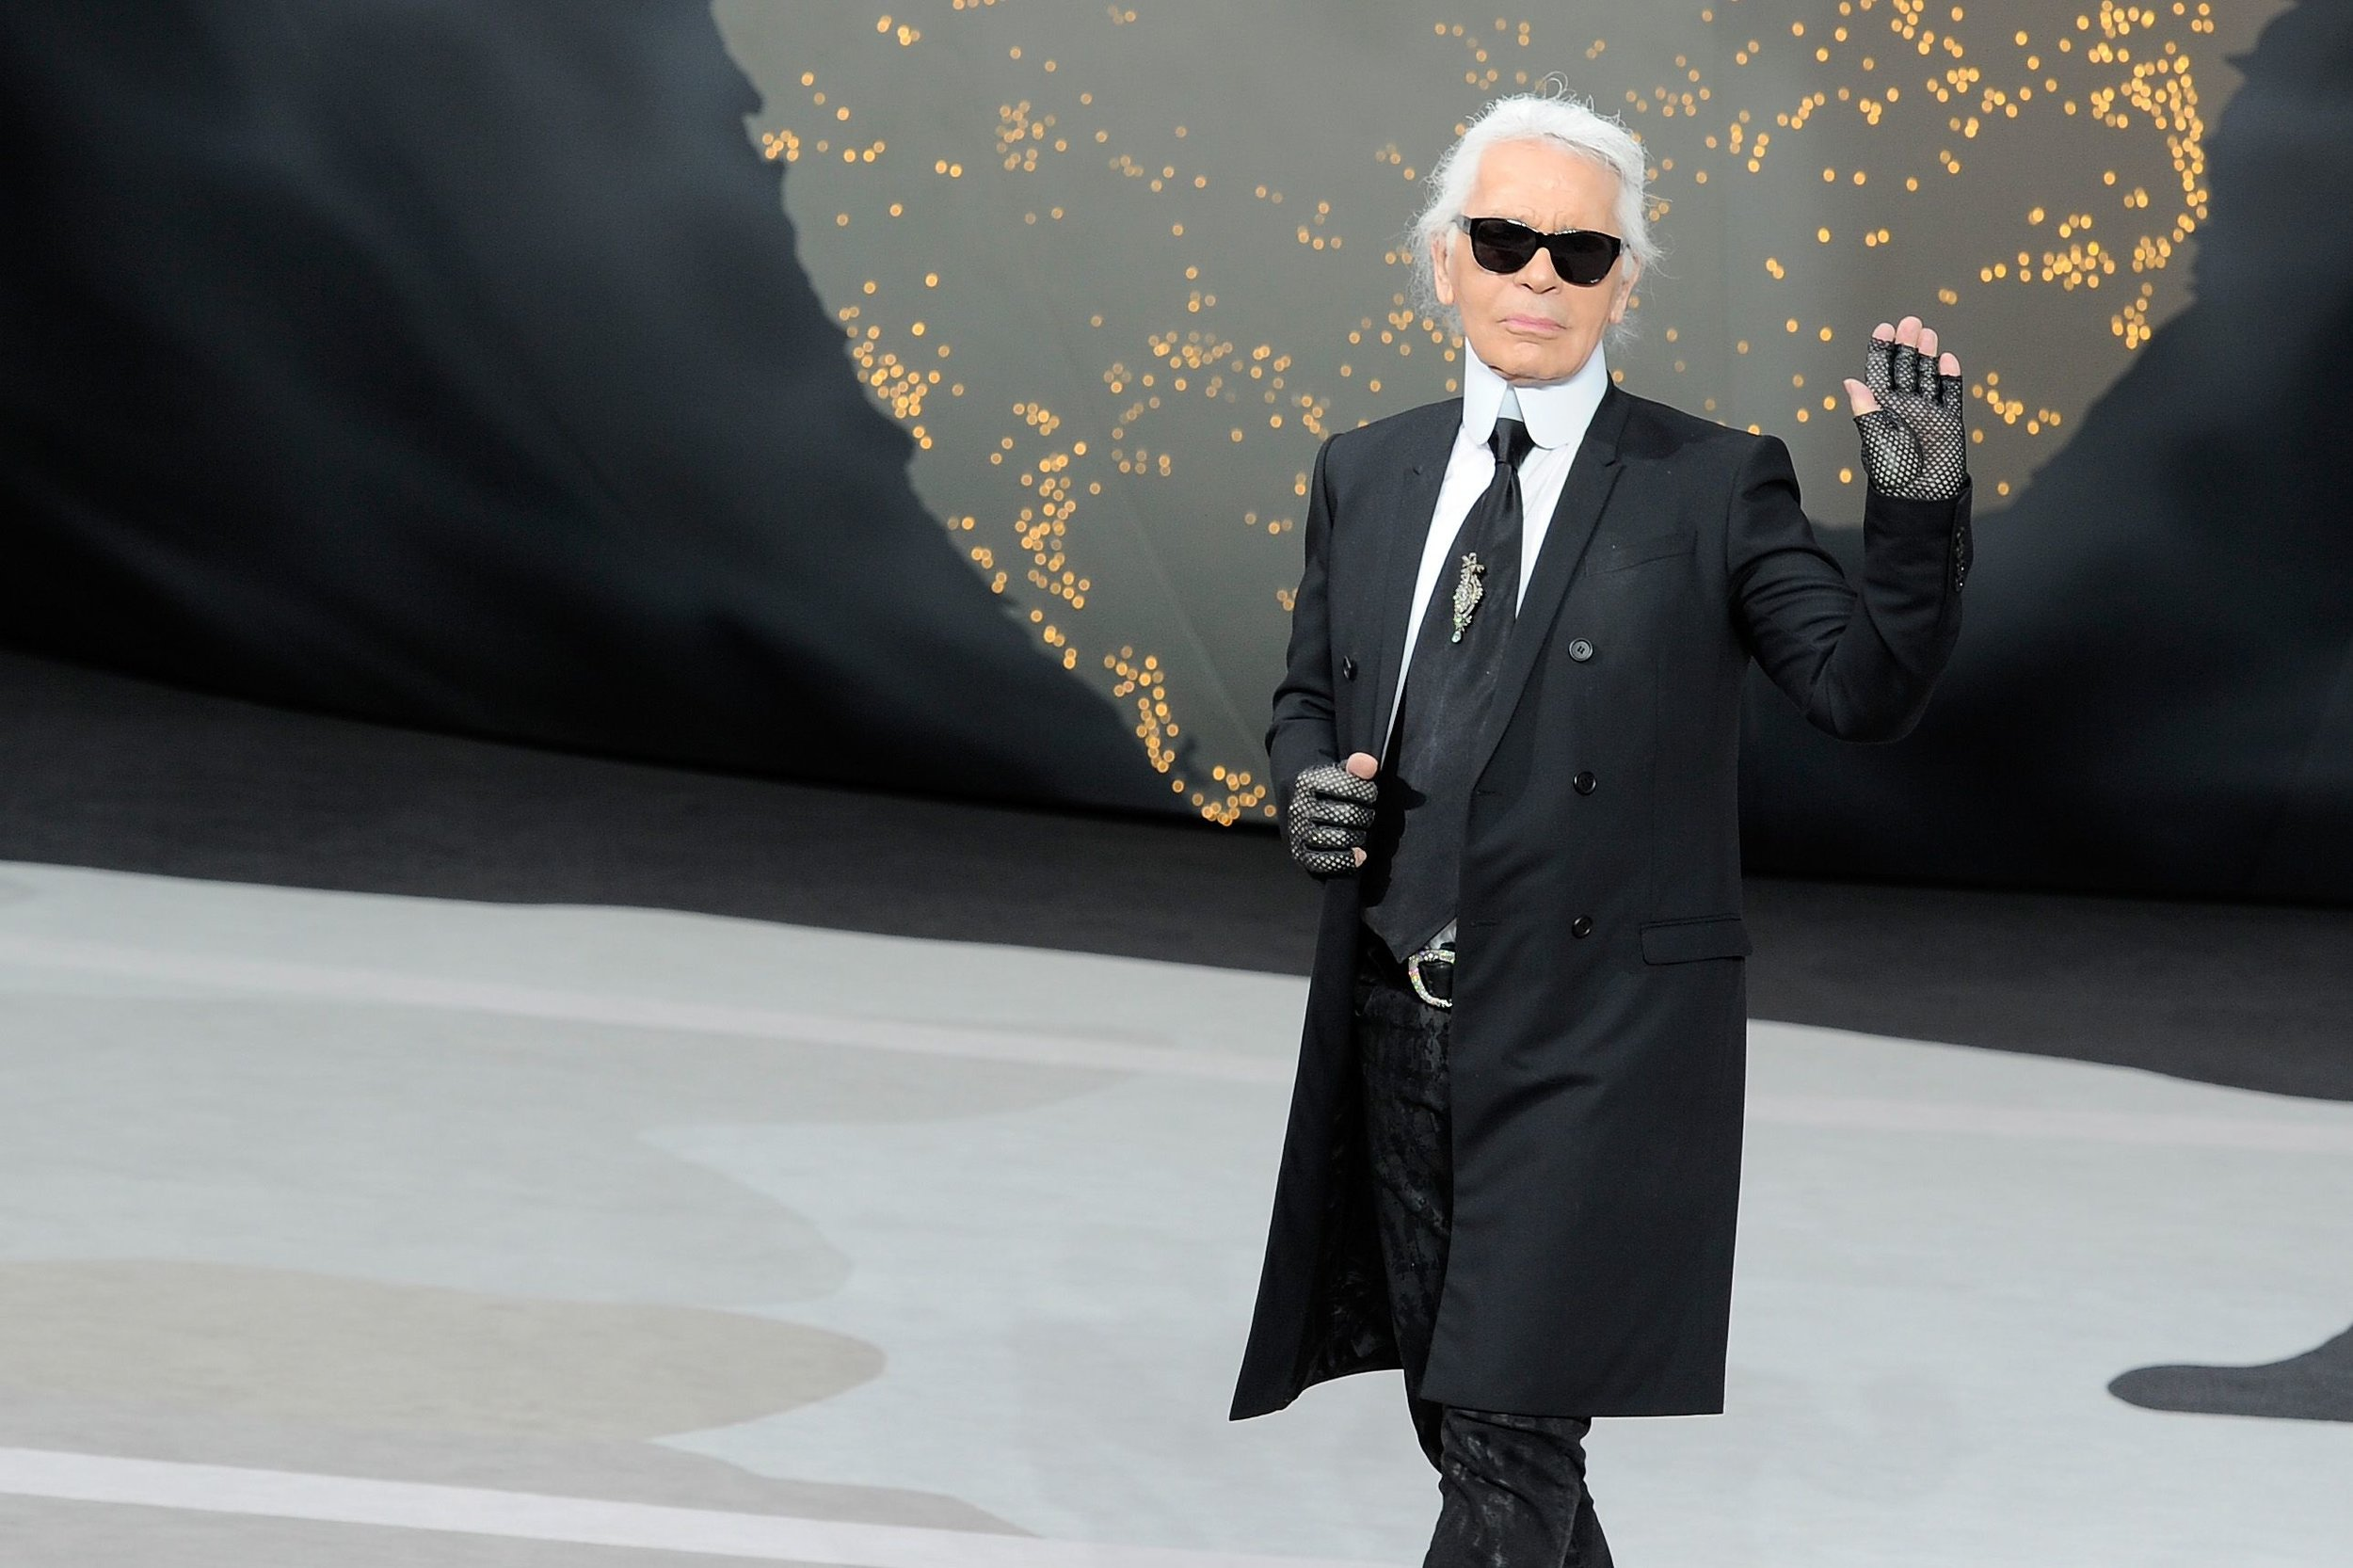 karl-lagerfeld-walks-the-runway-during-the-chanel-fall-news-photo-163163436-1550580048.jpg